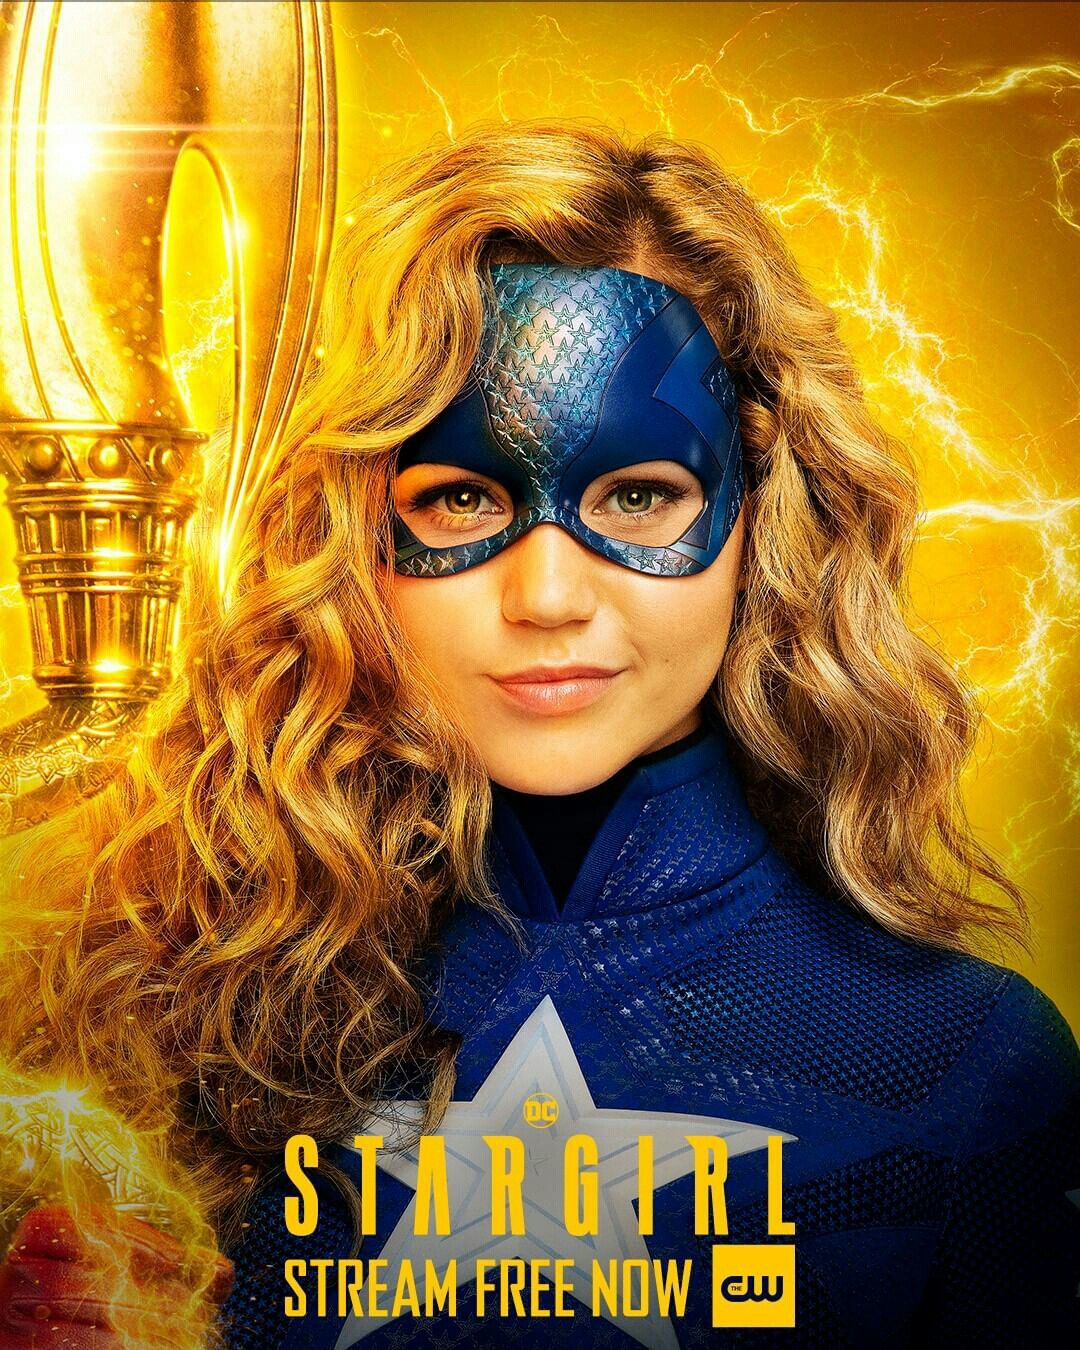 Stargirl on Twitter: Its her time to shine. Stargirl is